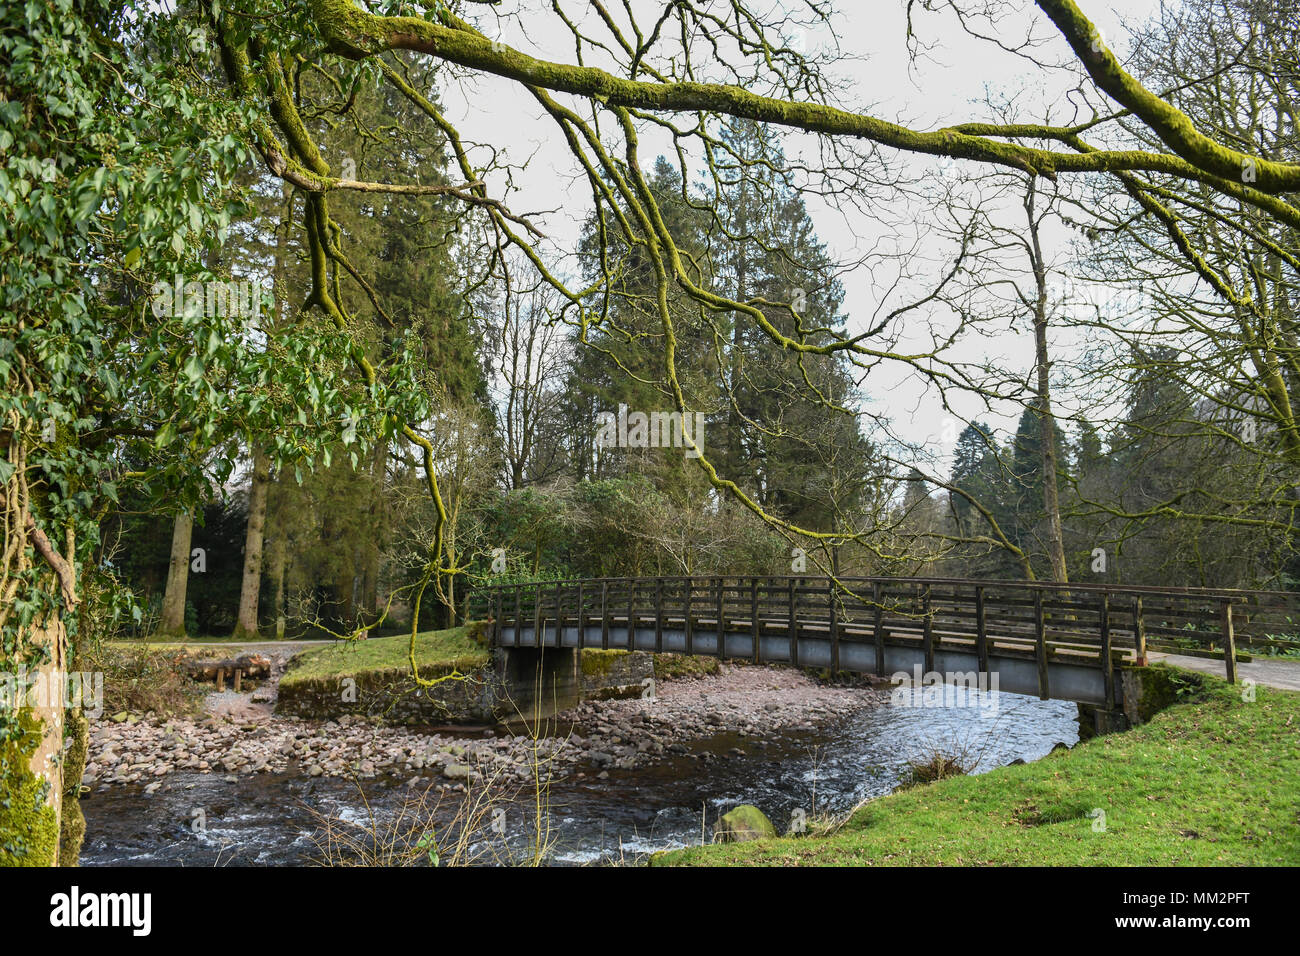 A bridge over the river Tawe at Craig y Nos in the Swansea Valley, Wales, UK. - Stock Image